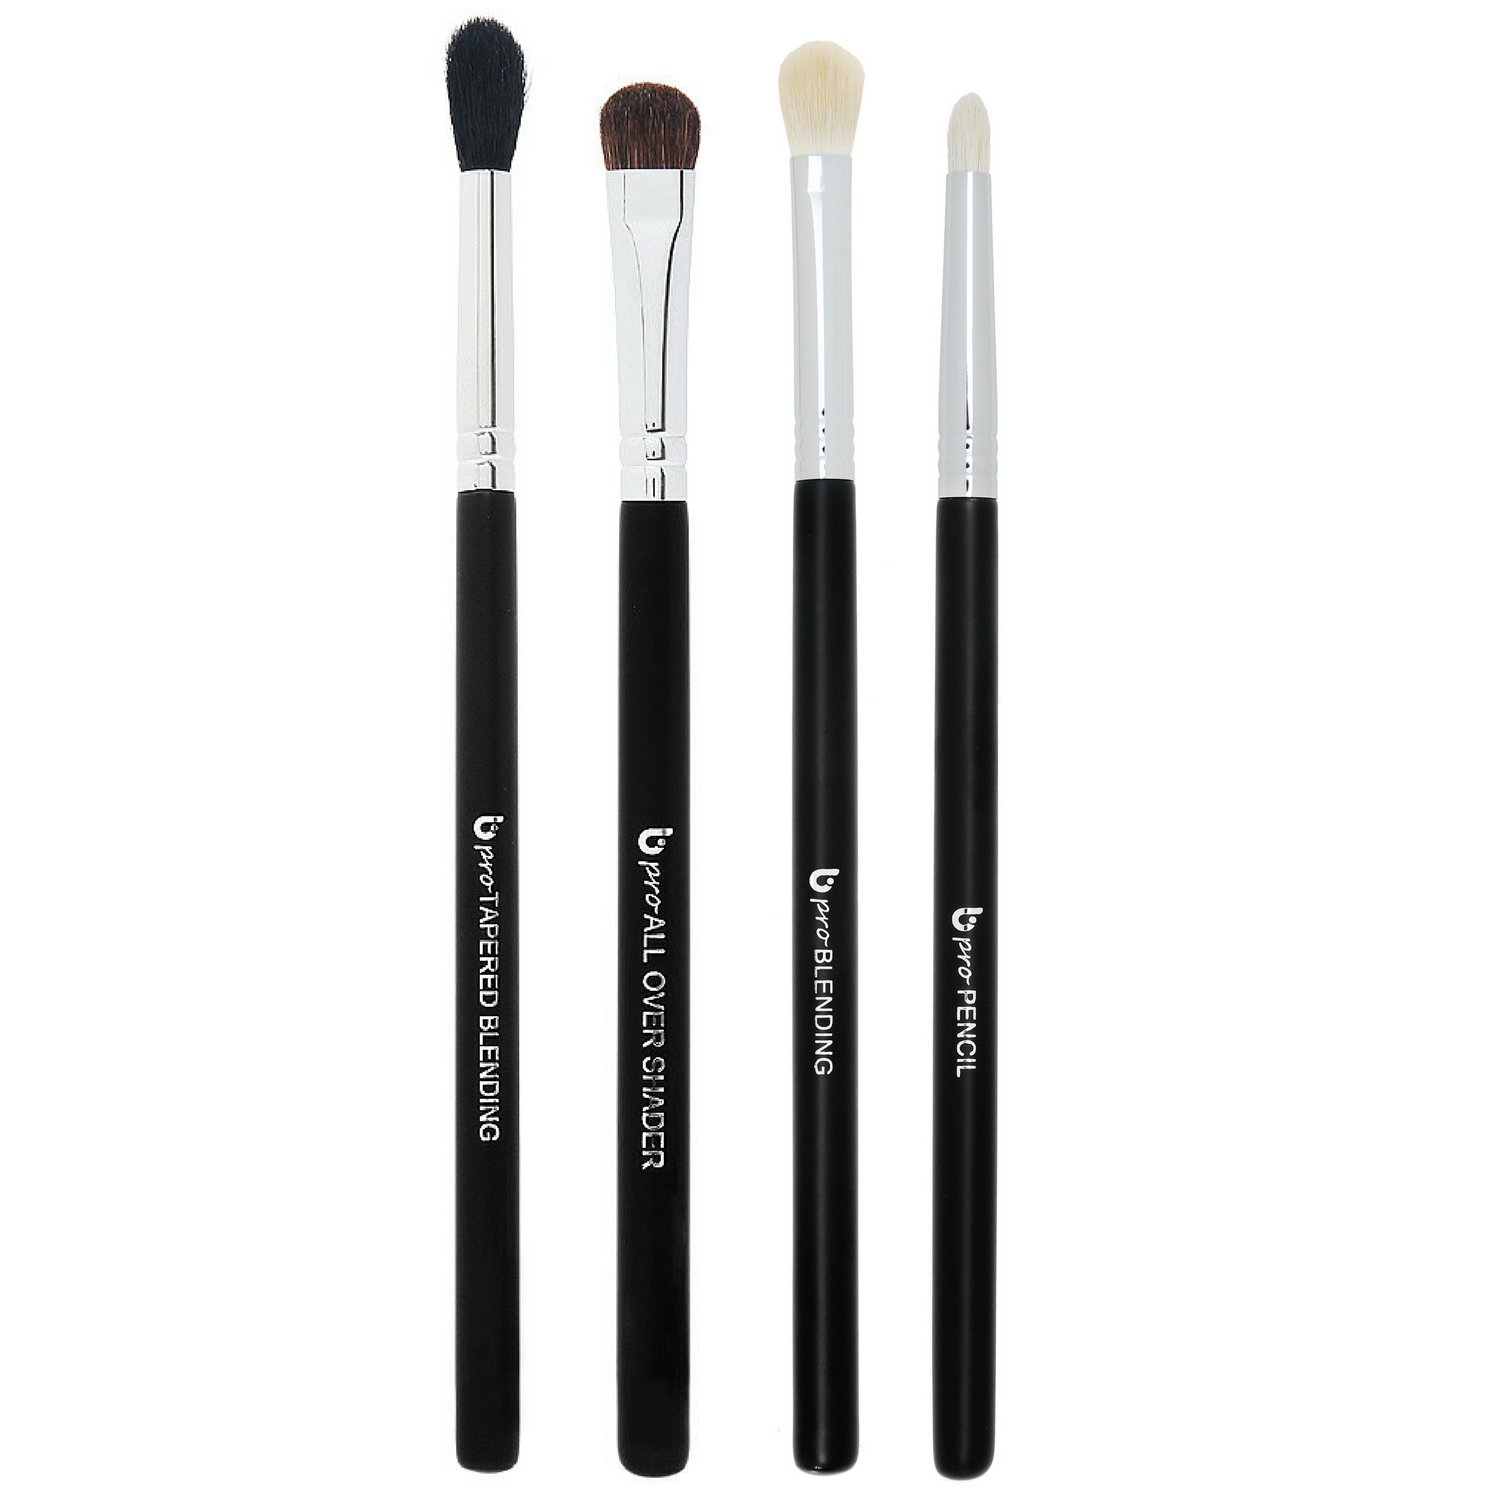 0e9481391581f Amazon.com : Basic Eye Makeup Brushes Includes 4 Must Have Eyeshadow Brush  Set: Pencil, Tapered Blending, All Over Shader, Blending : Beauty